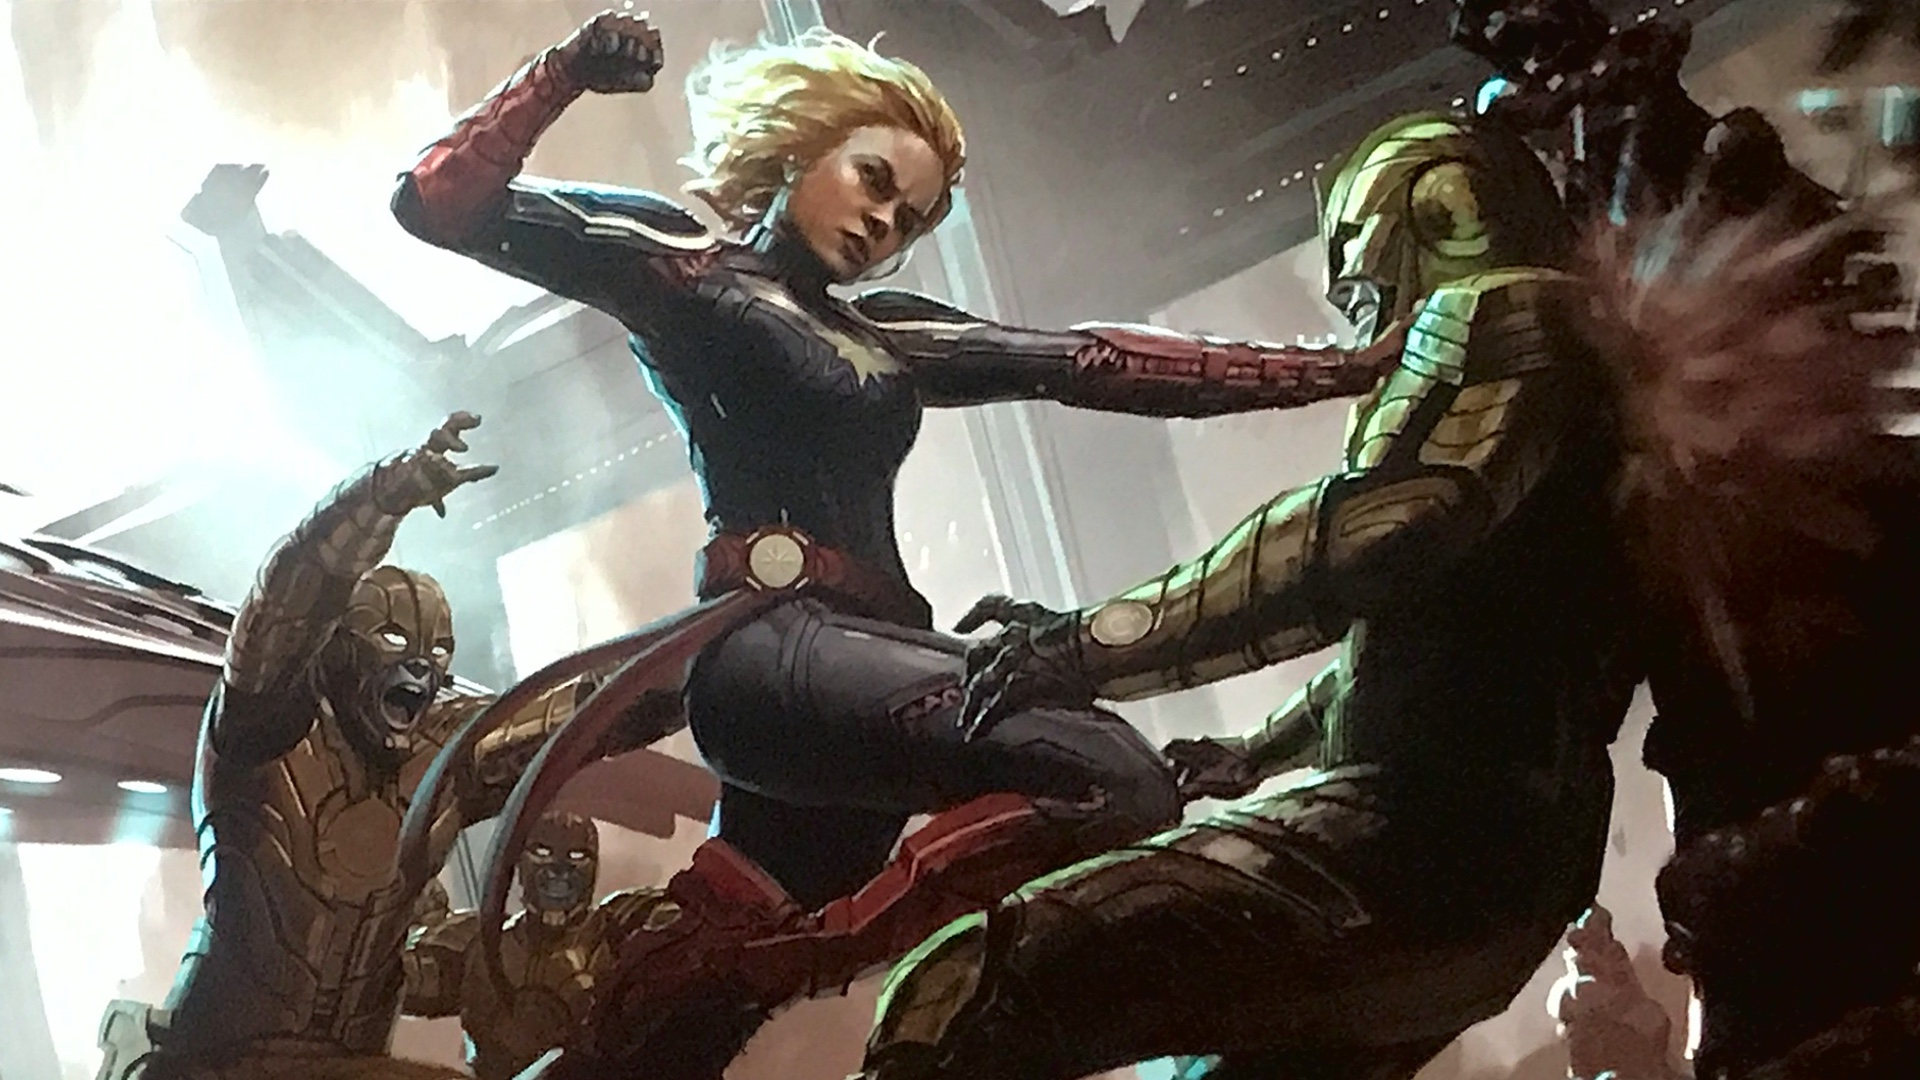 the-villain-that-ben-mendelsohncould-be-playing-in-captain-marvel-has-reportedly-been-revealed-social